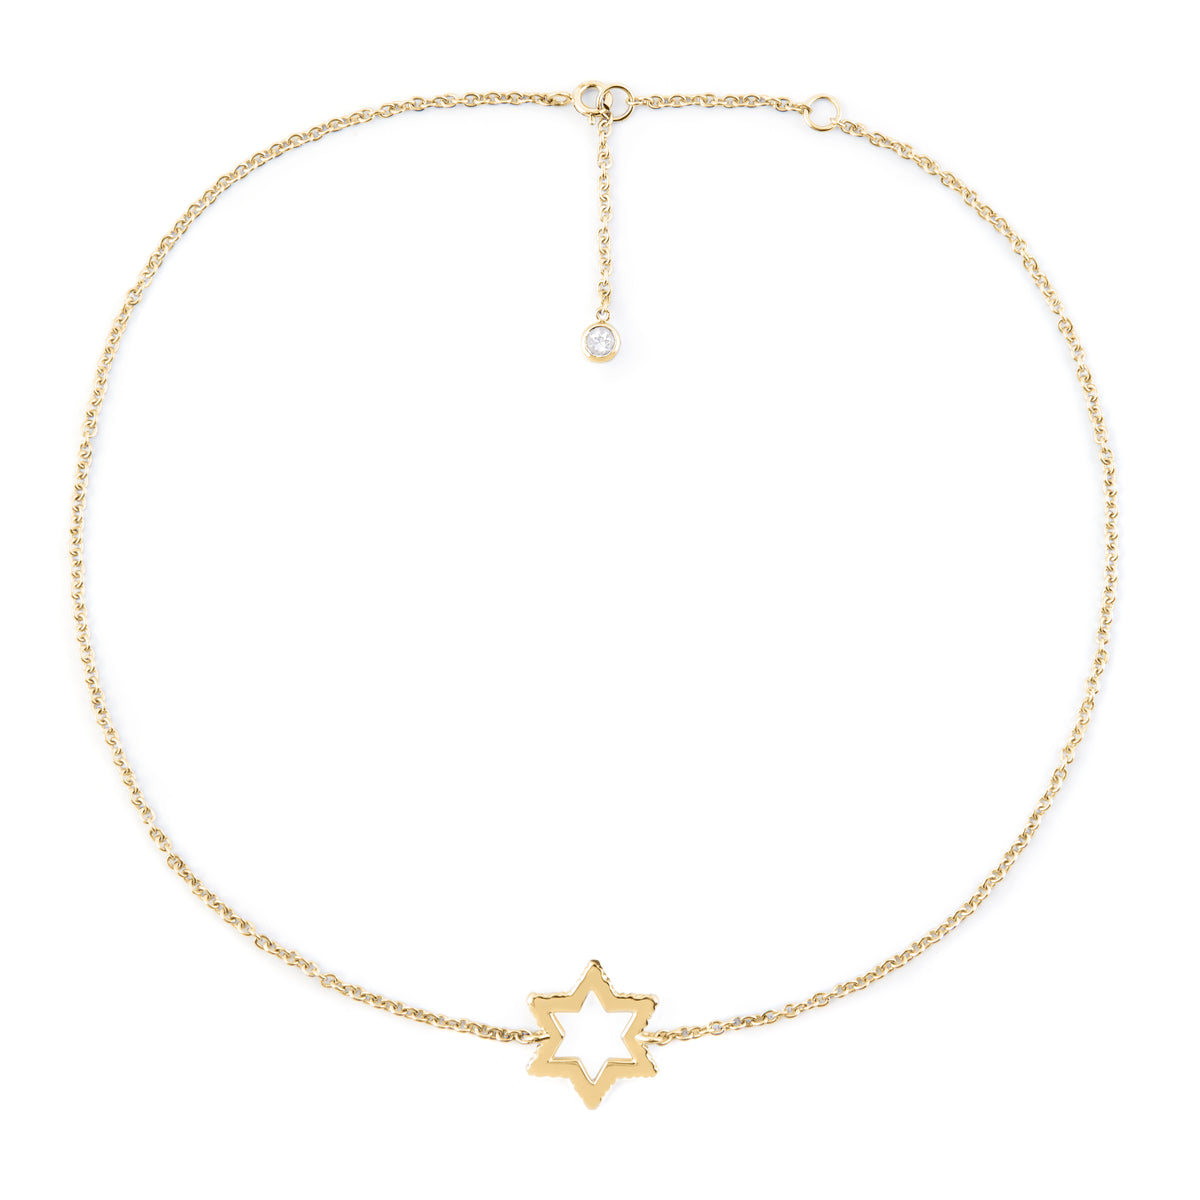 Cosmo Gold White Topaz Necklace